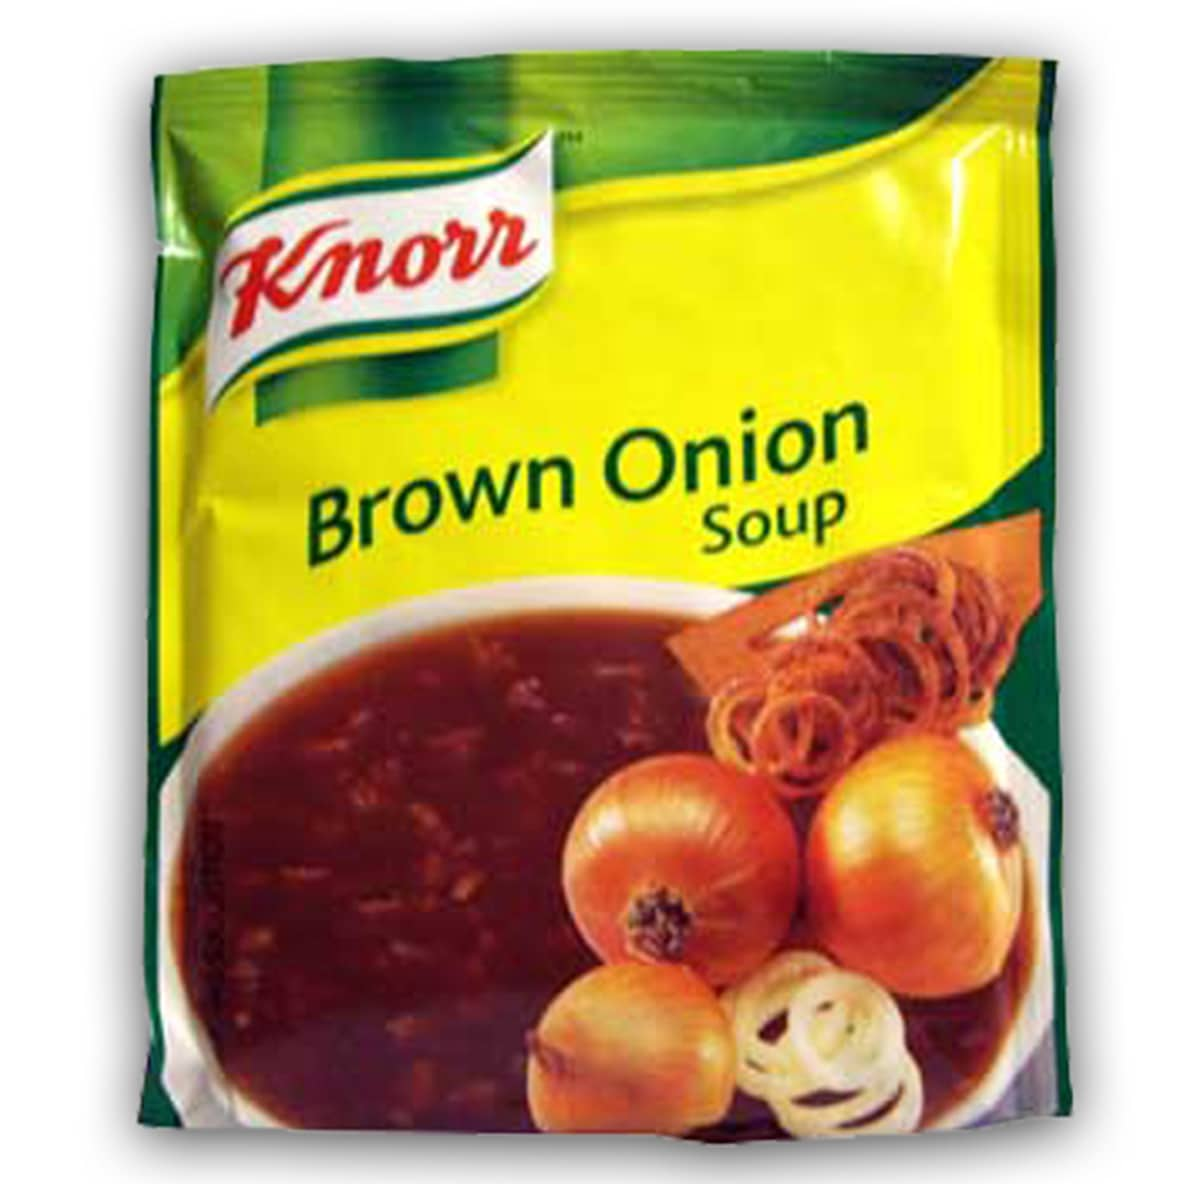 Buy Knorr Brown Onion Soup - 45 gm